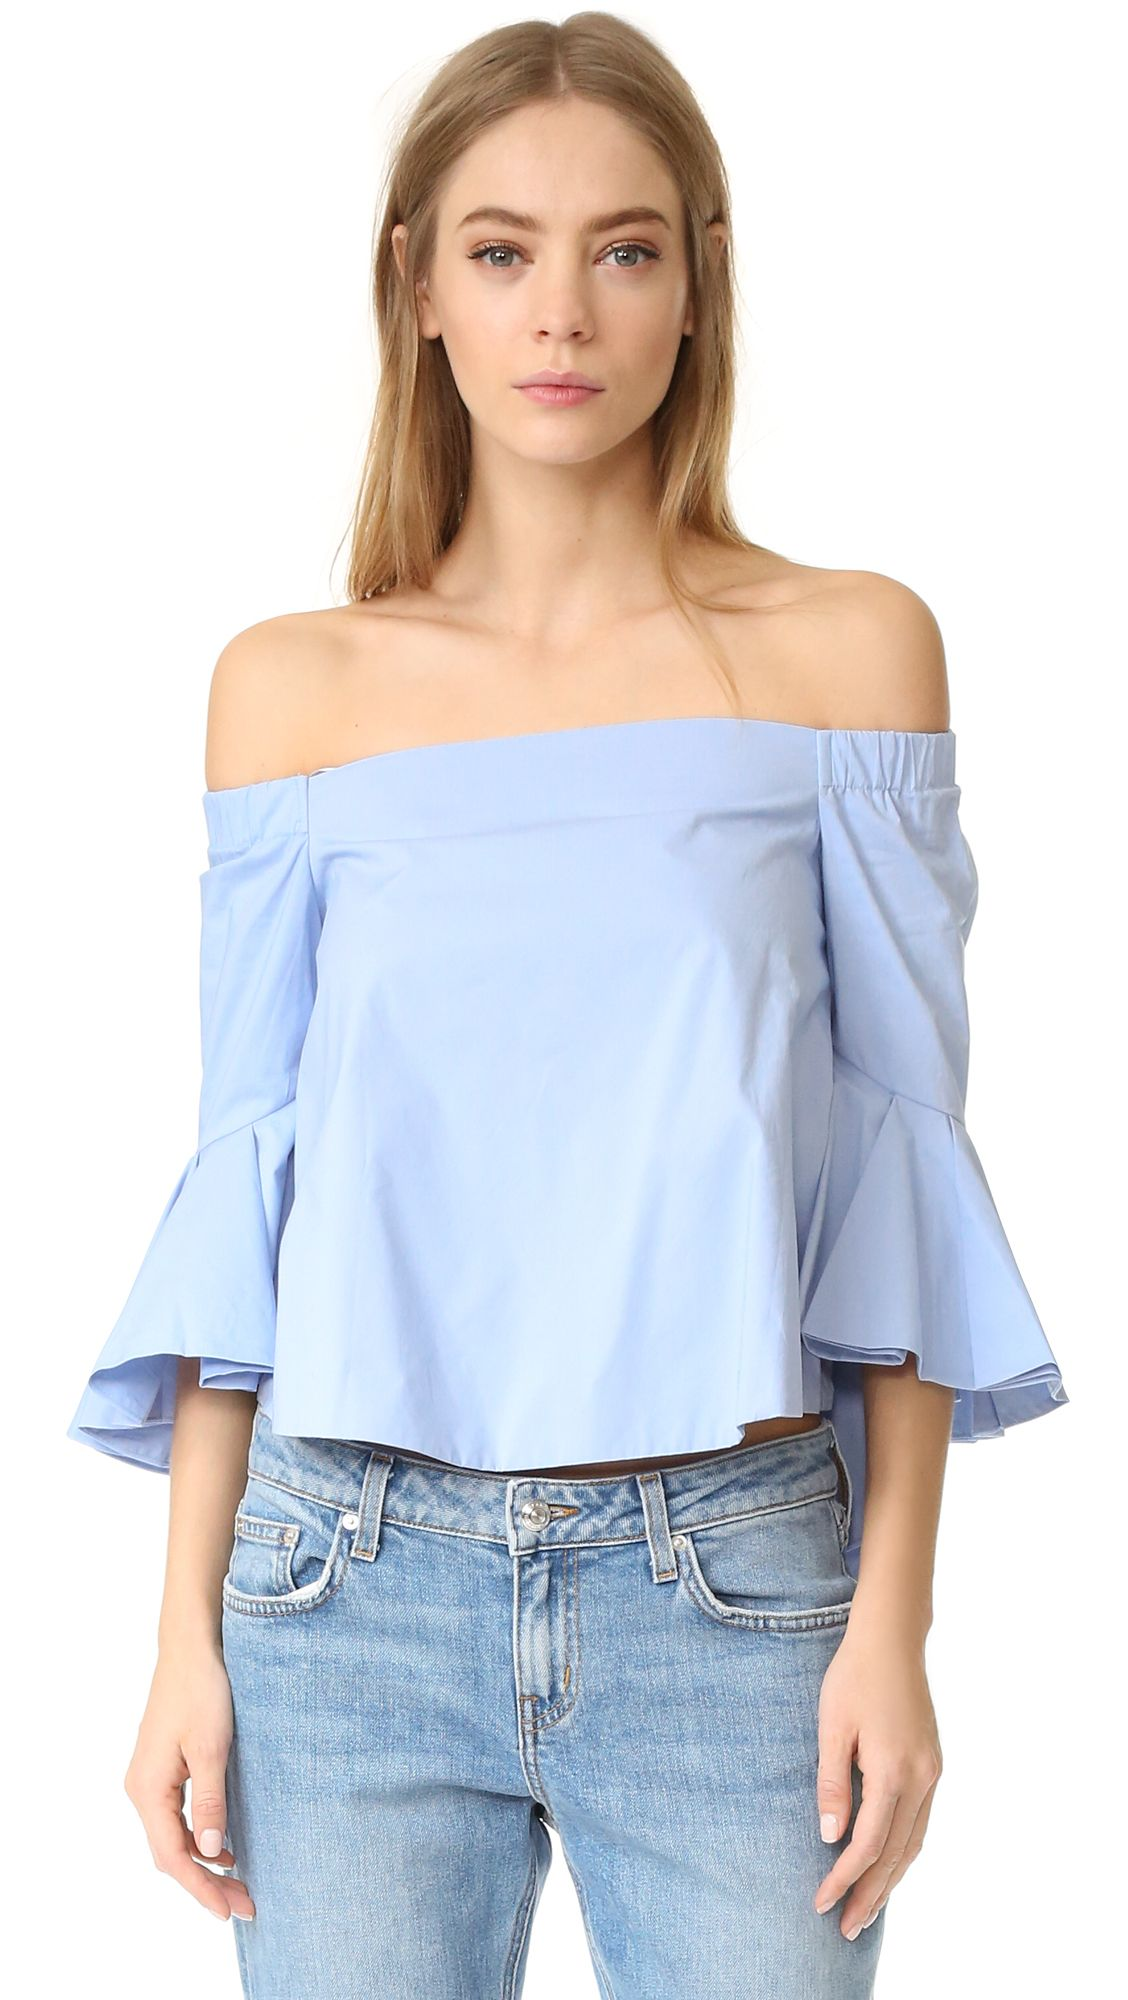 ca314f5497d3e Cómpralo ya!. Endless Rose Ruffle Off Shoulder Top - Powder Blue. An ...